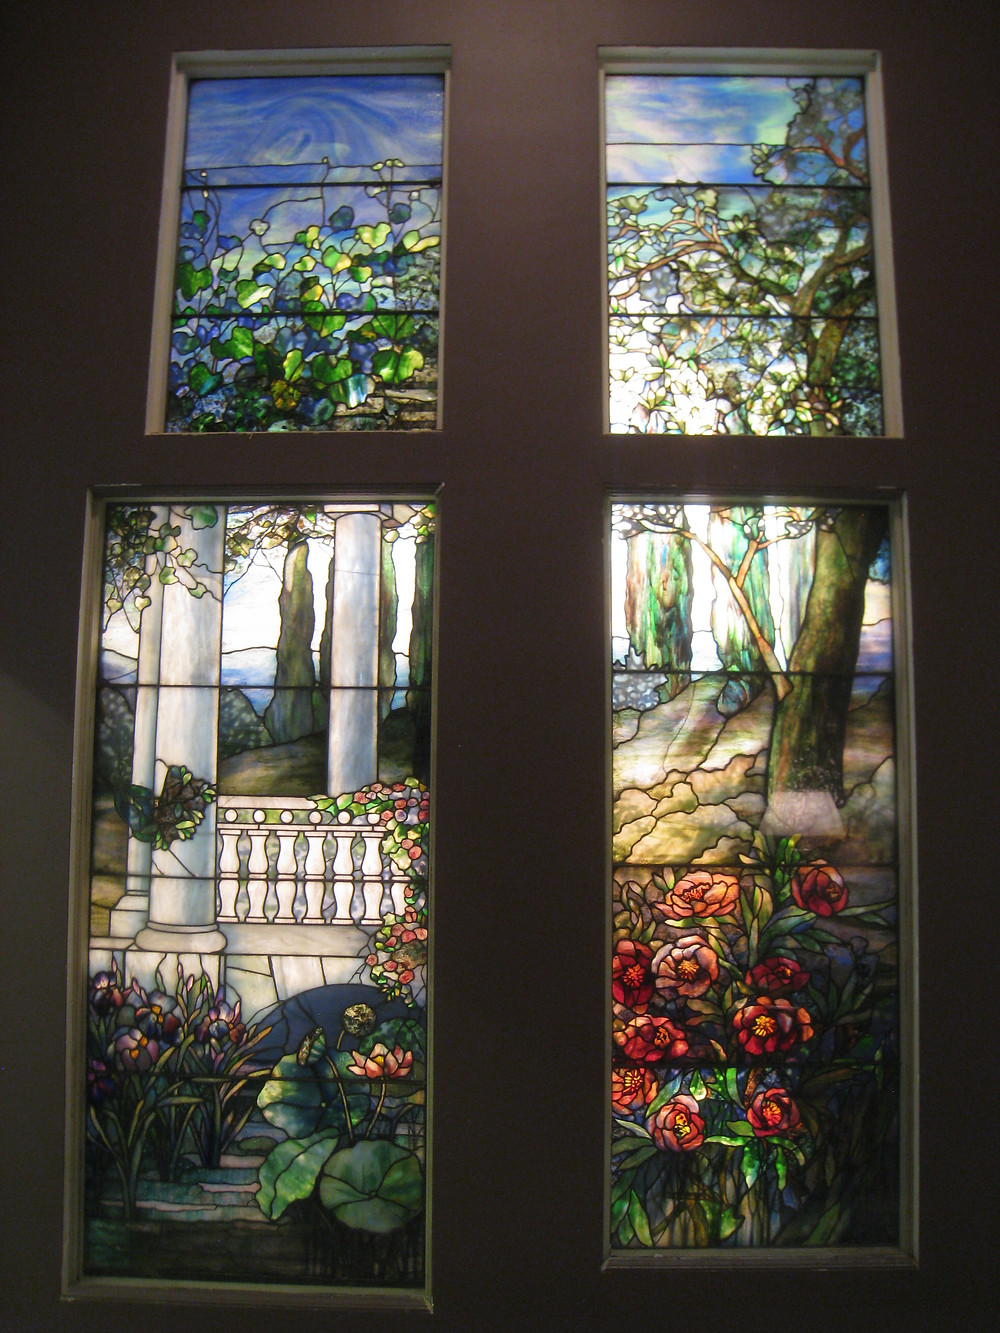 Tiffany stained glass windows at the Carnegie Museum of Art